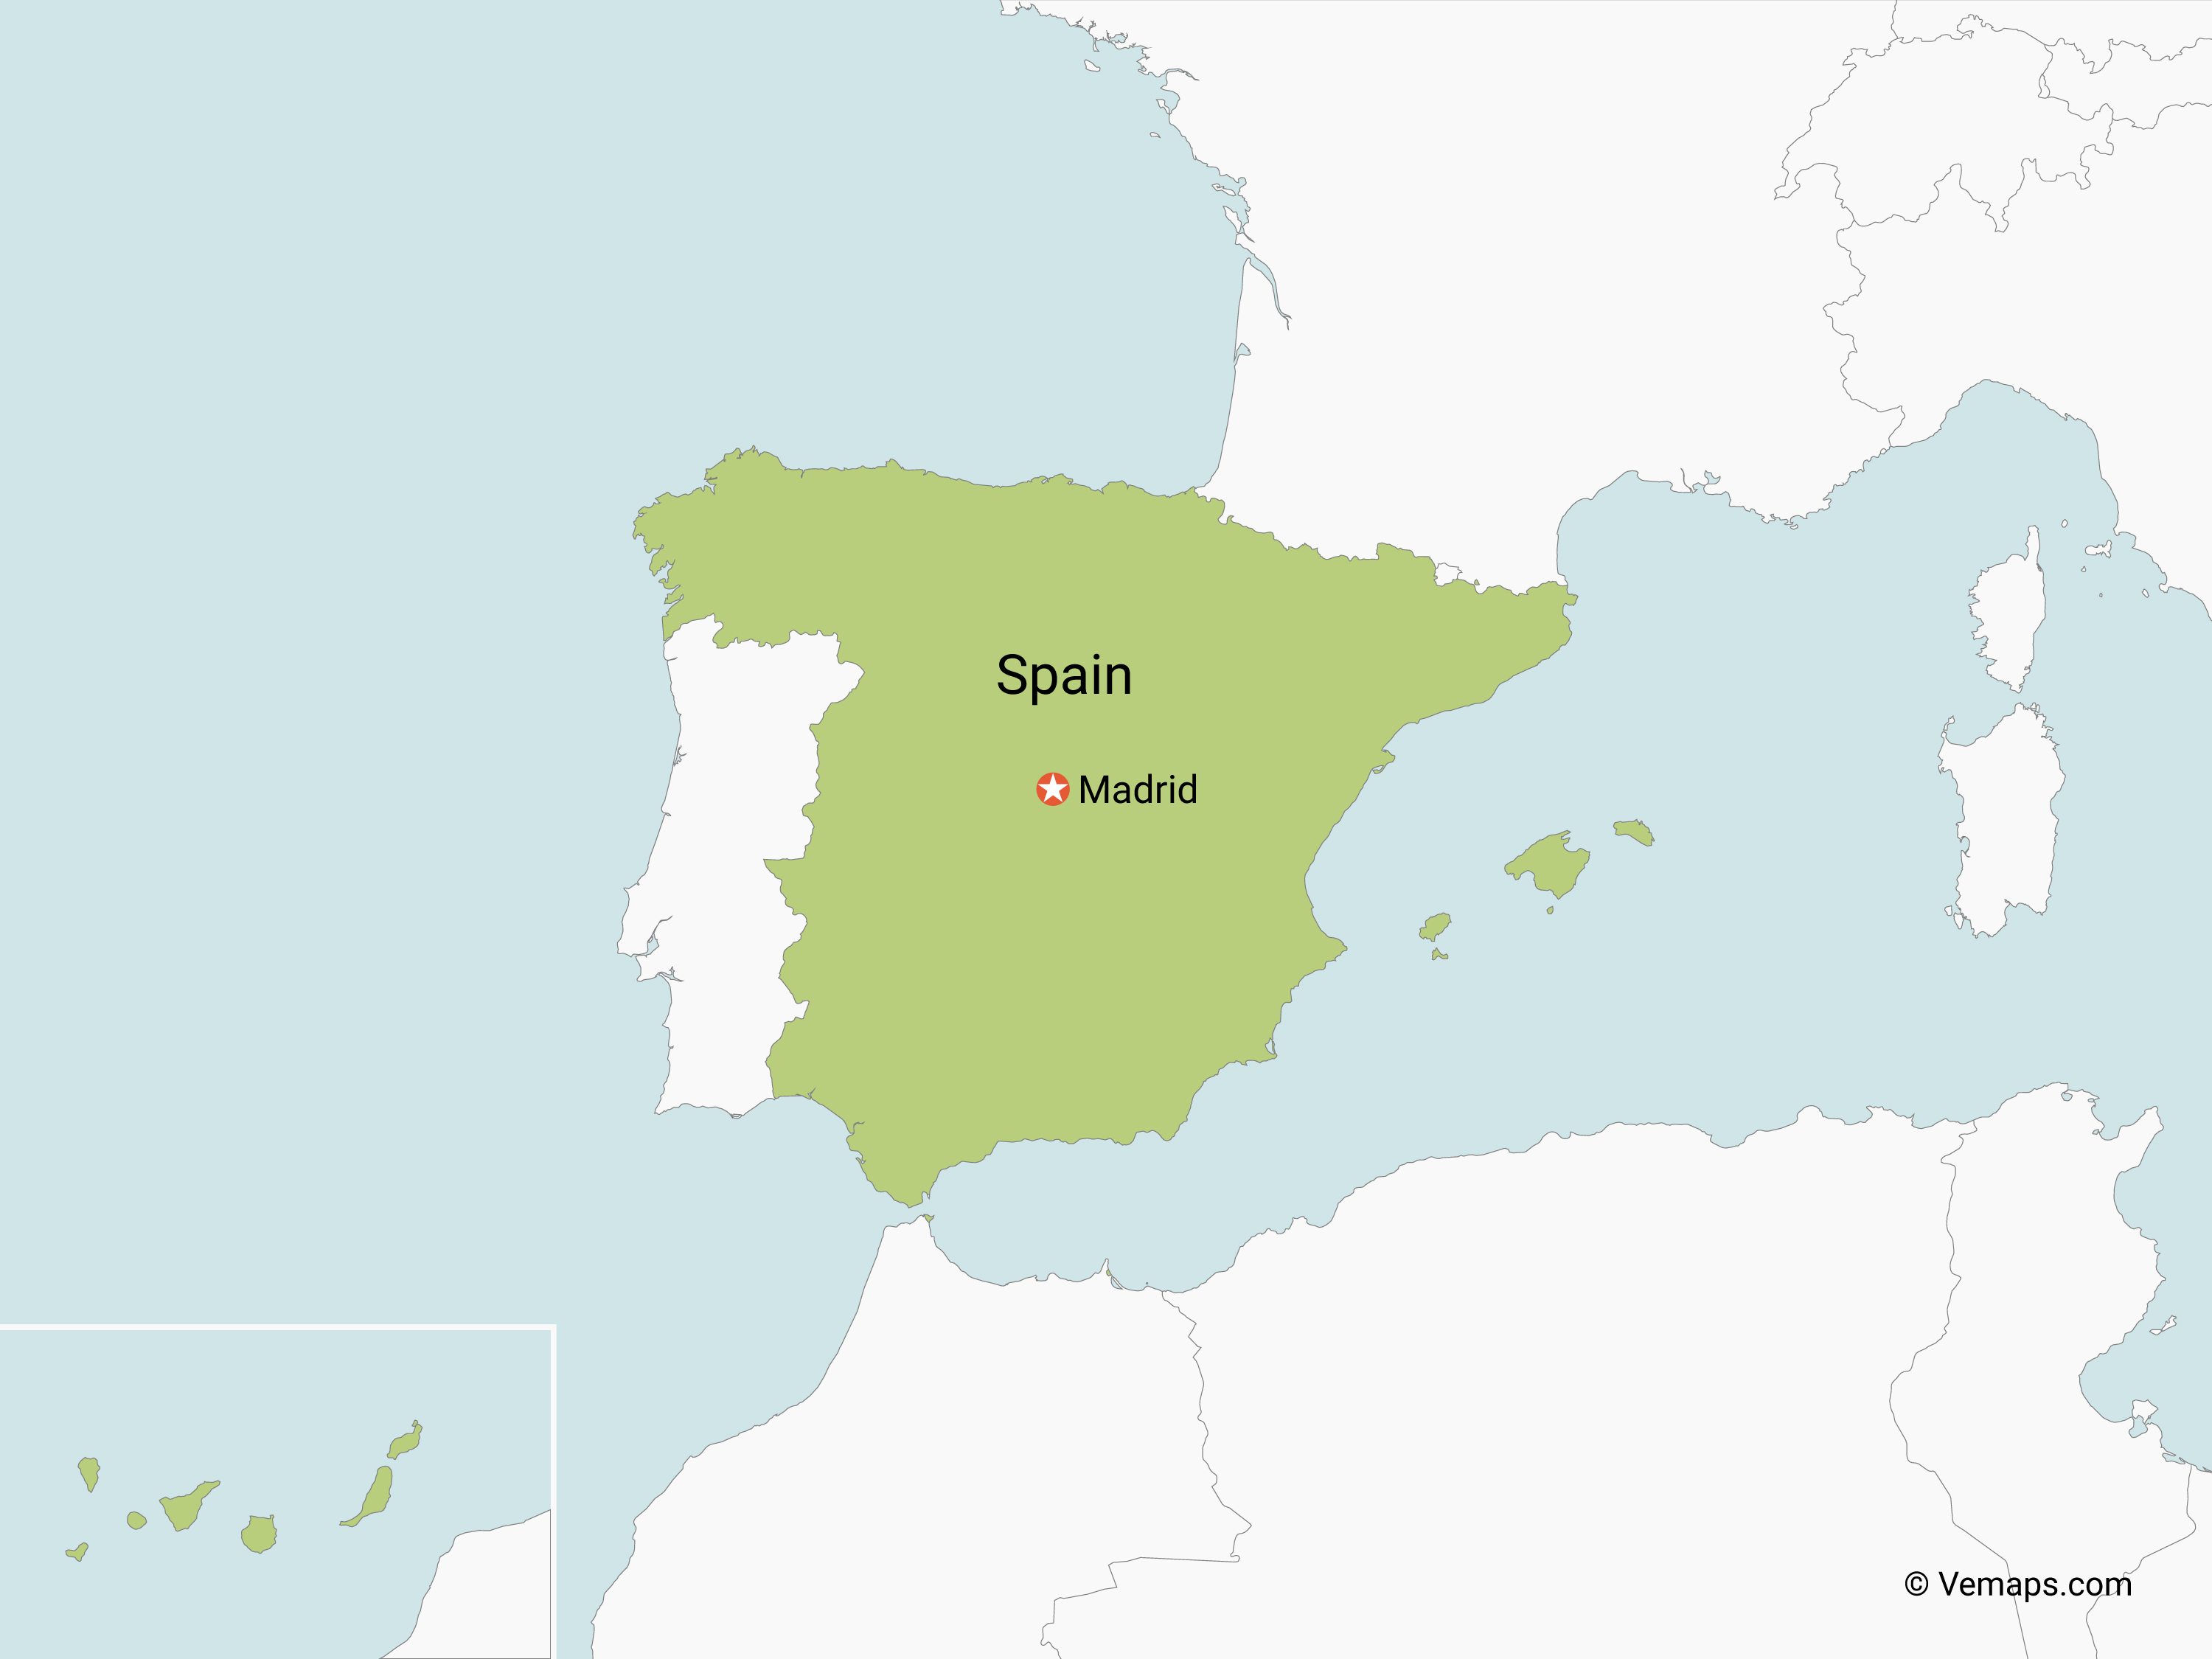 Map Of Spain And Surrounding Countries.Map Of Spain With Neighbouring Countries Free Vector Maps